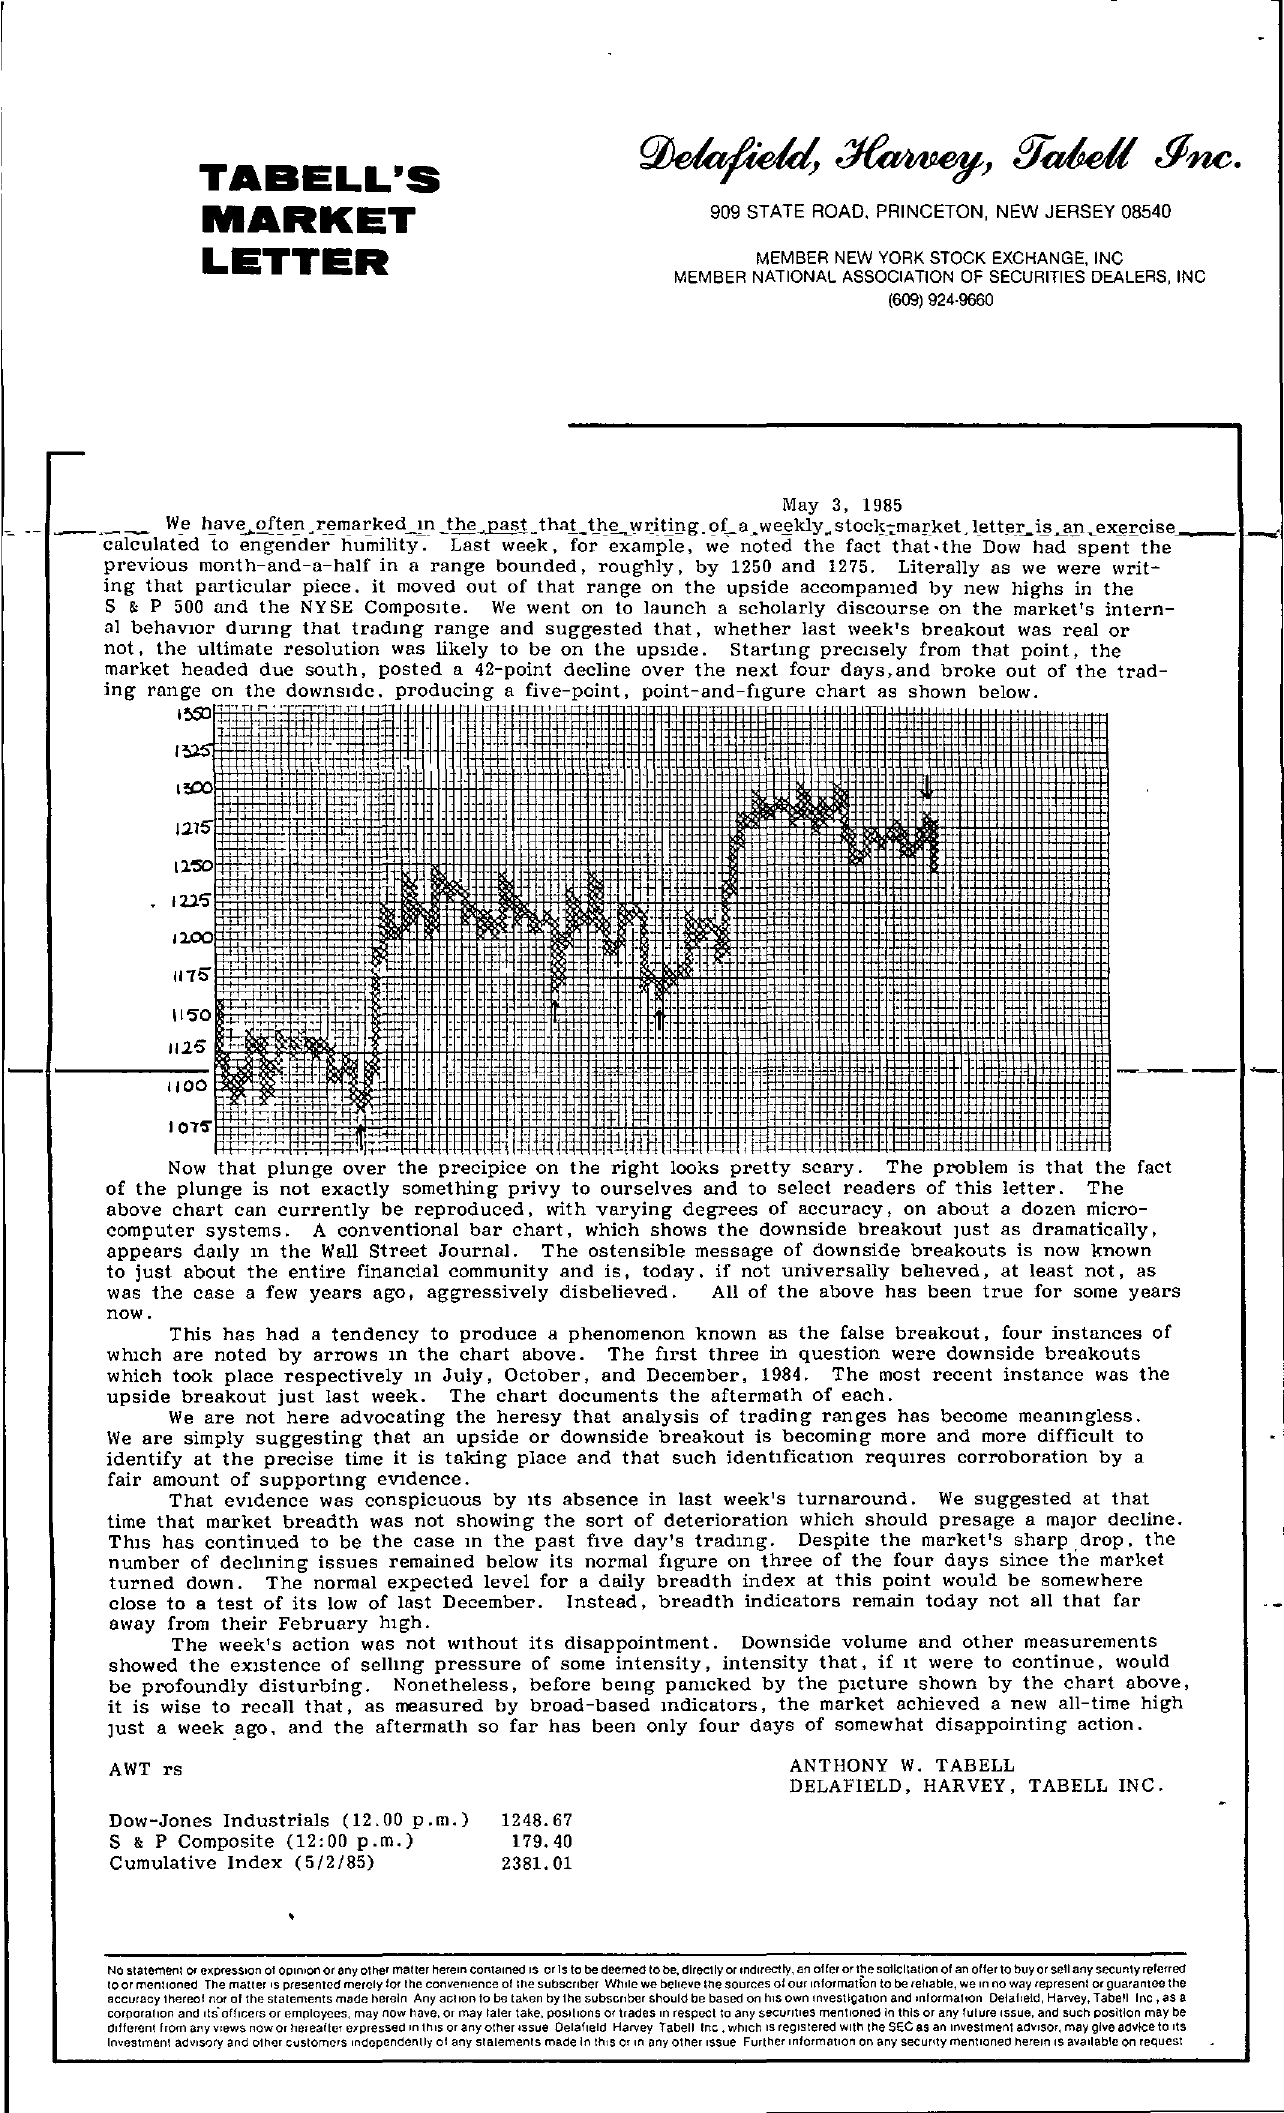 Tabell's Market Letter - May 03, 1985